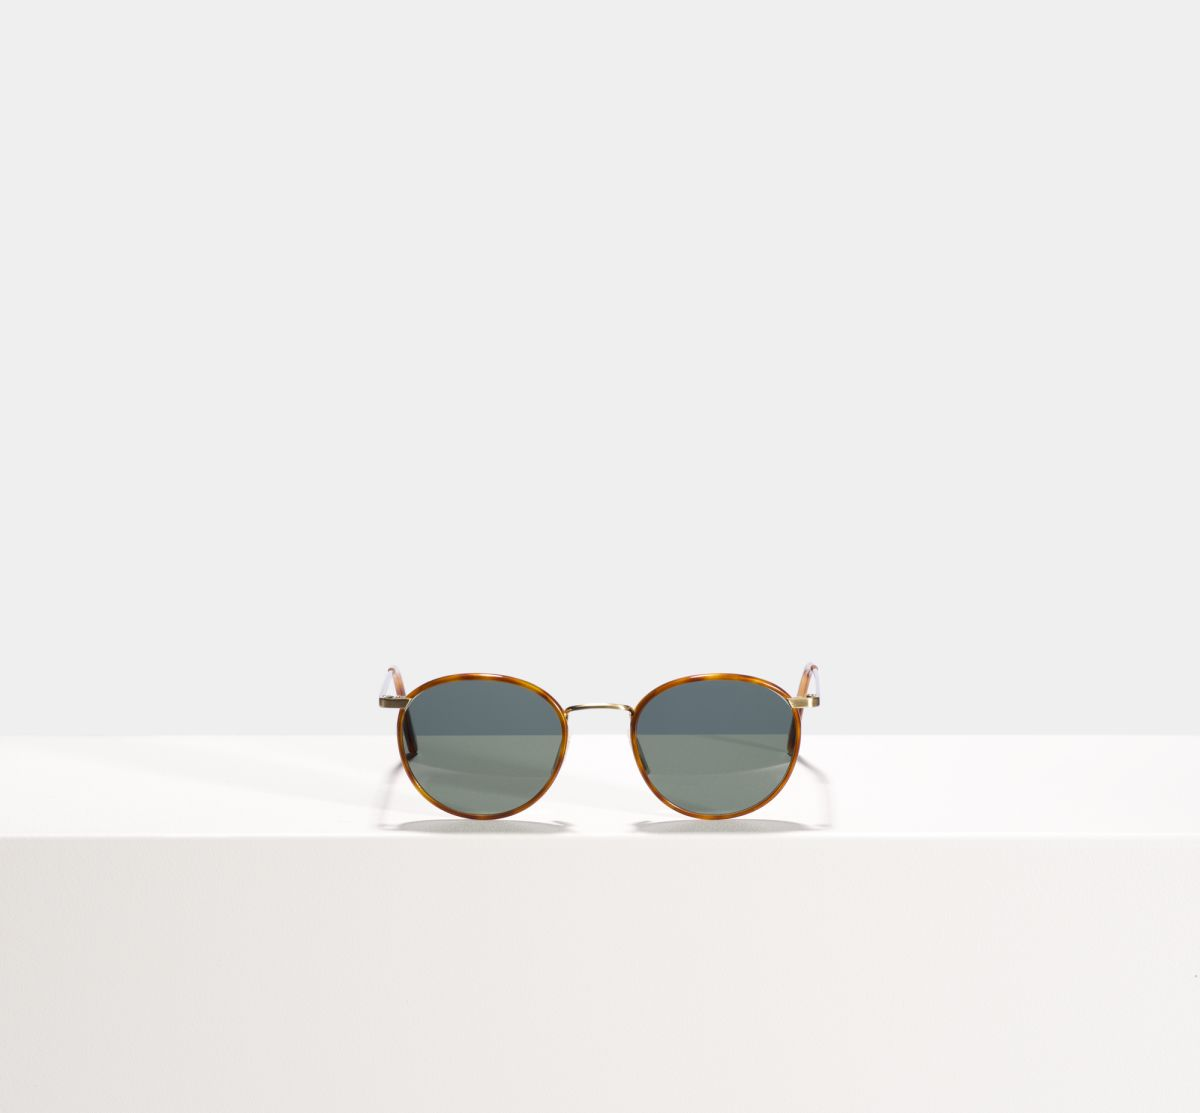 Neil round metal glasses in Desert Spice by Ace & Tate